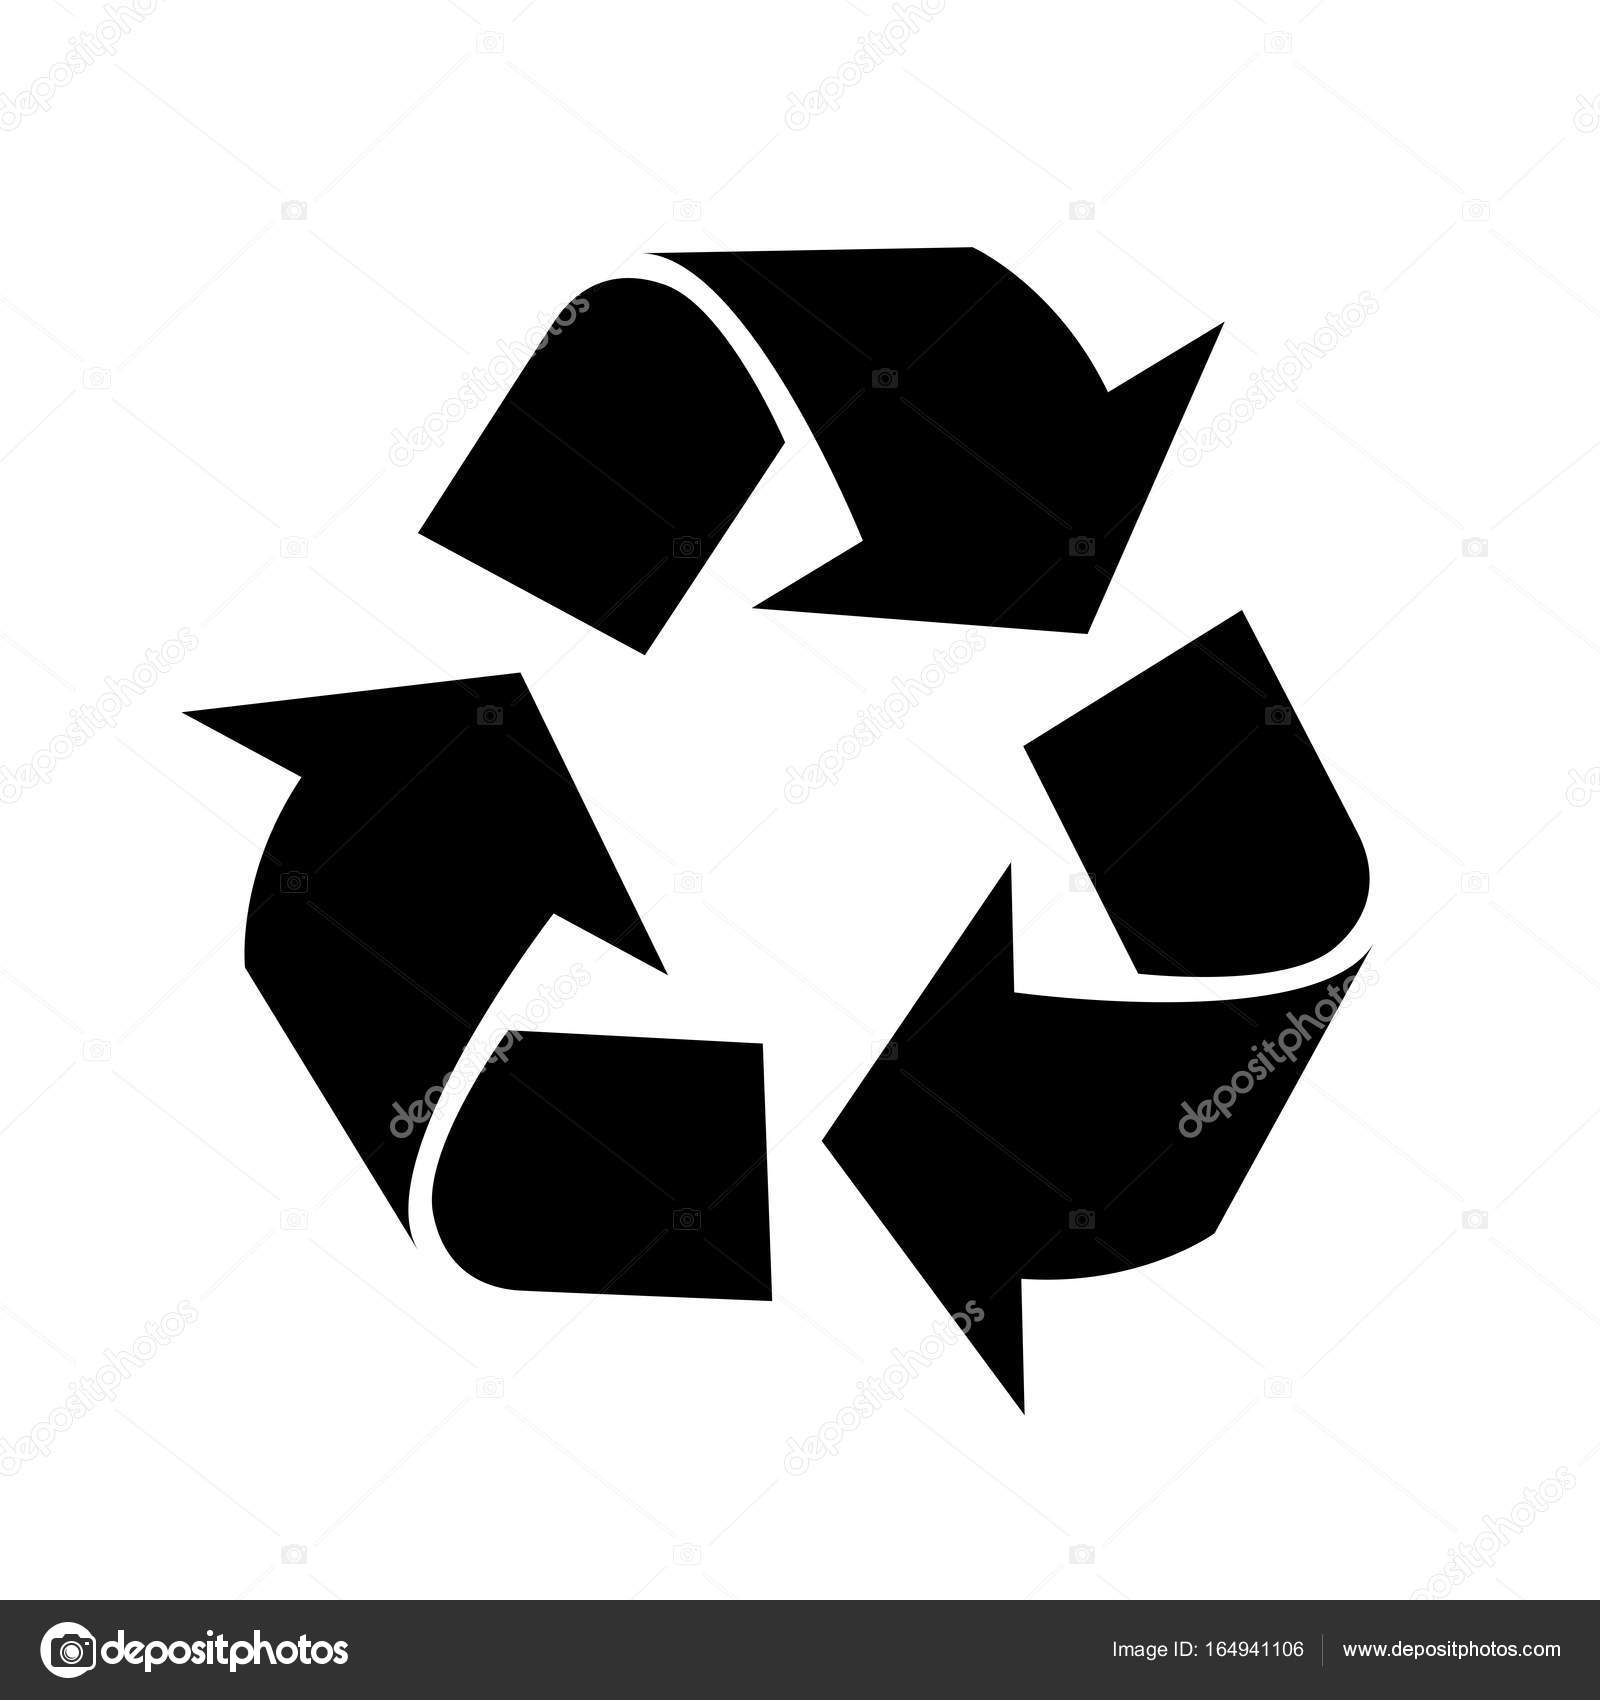 recycle icon vector iconic design stock vector dcliner07 gmail rh depositphotos com recycling icon vector free recycling icon vector free